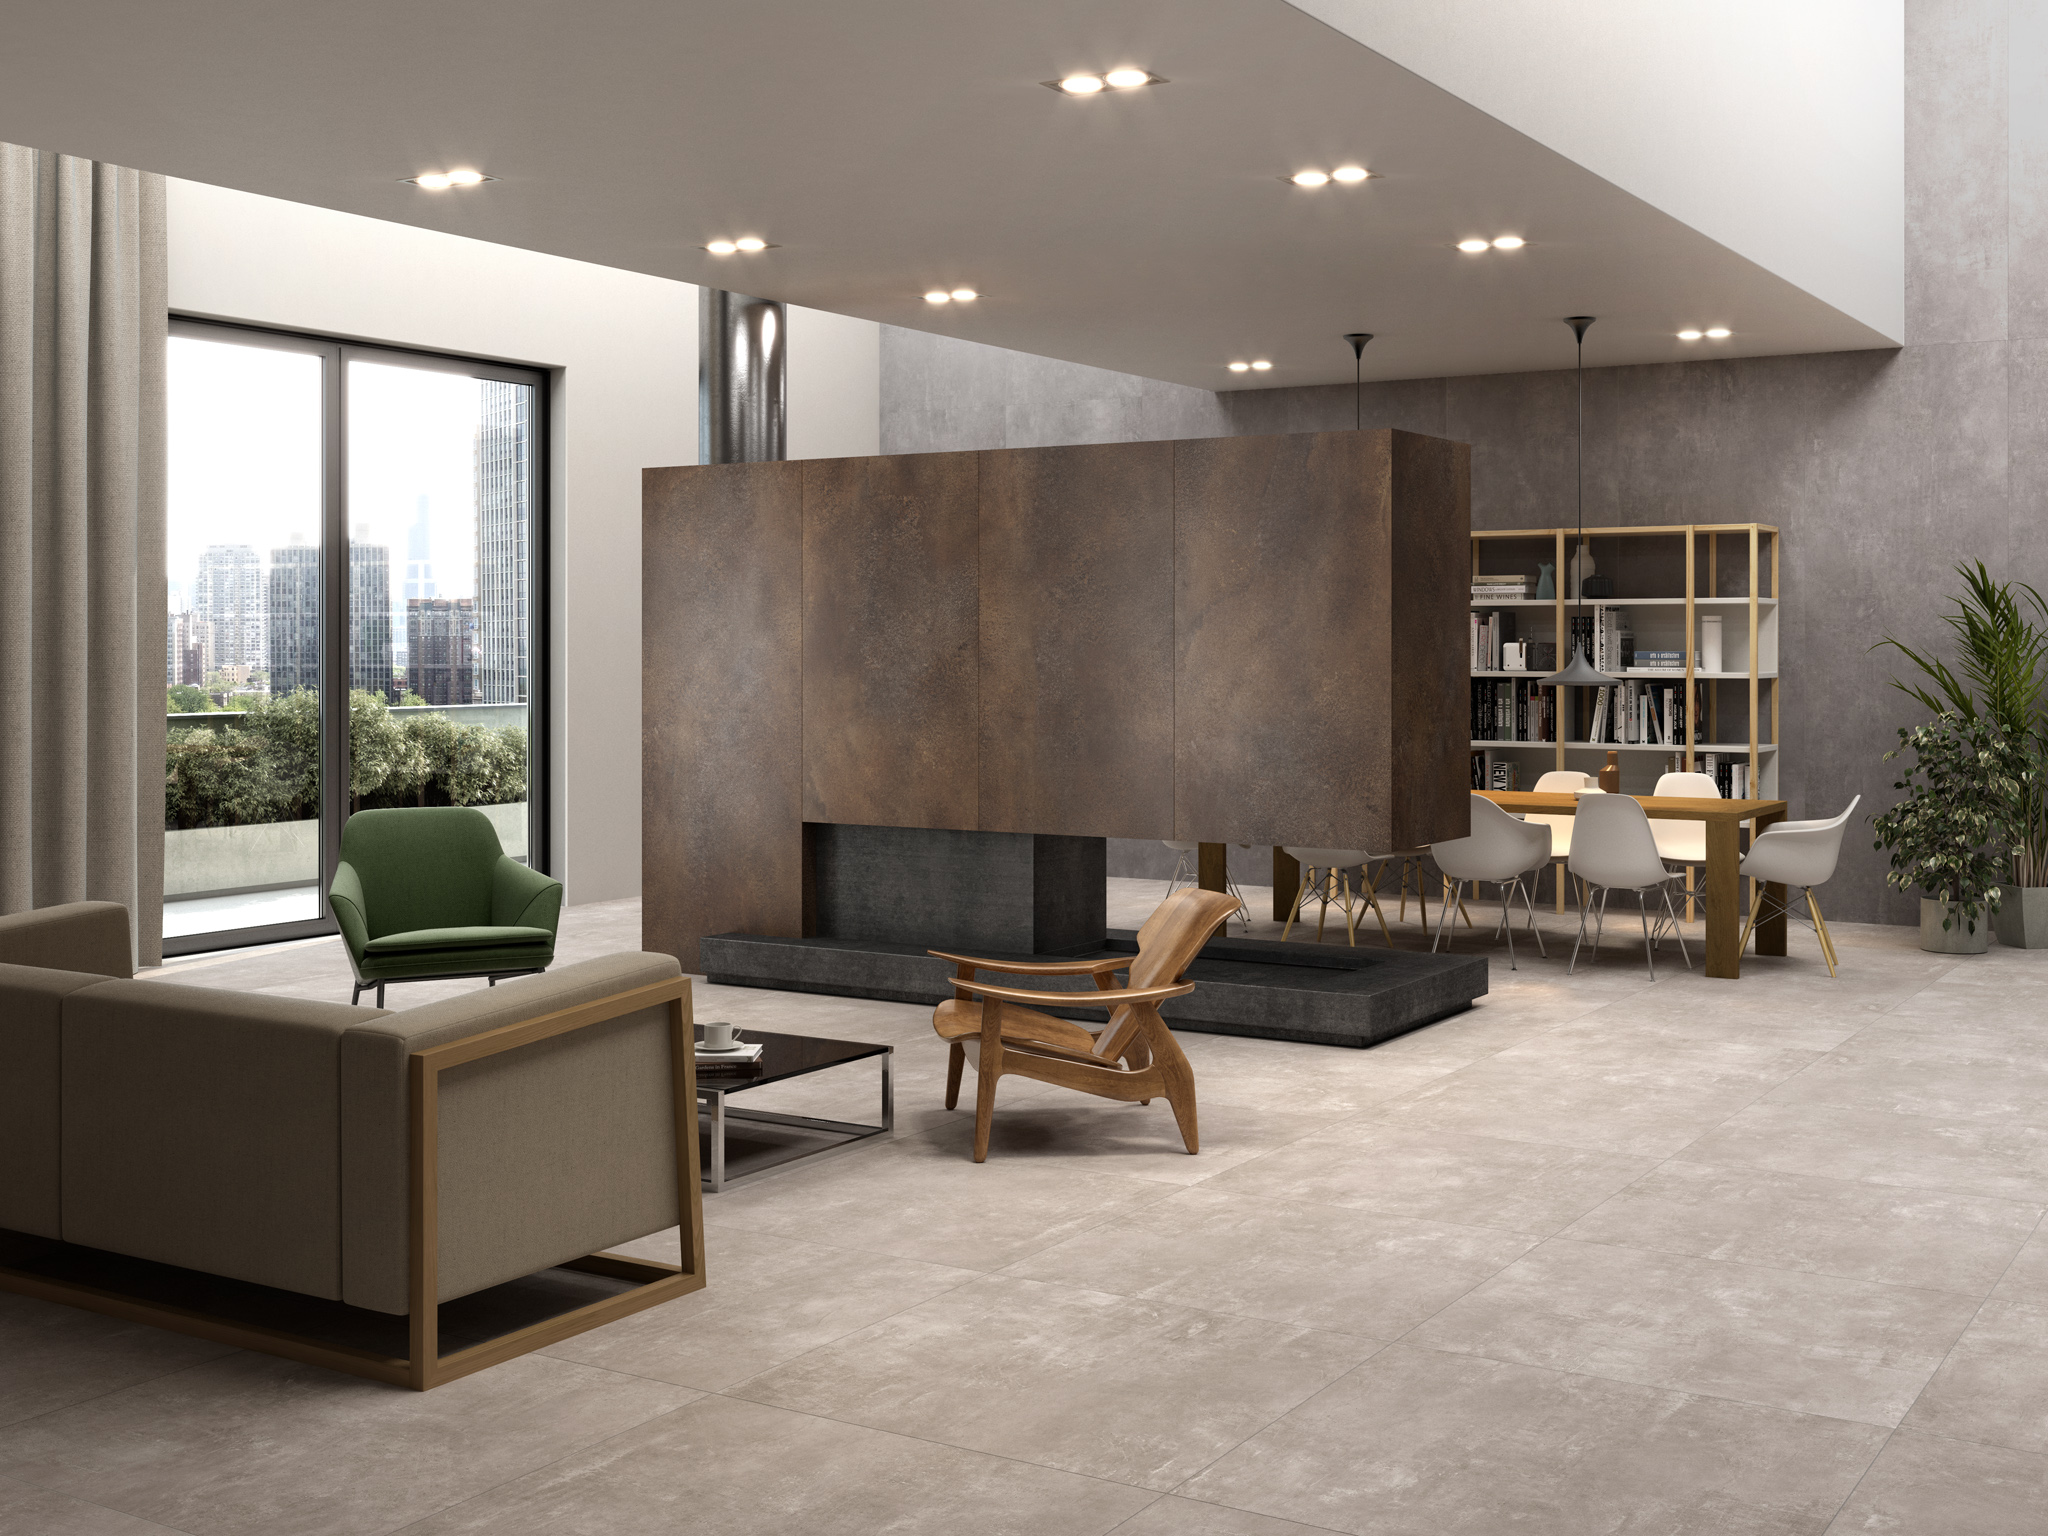 introducing urbe a new concrete effect porcelain tile from italy. Black Bedroom Furniture Sets. Home Design Ideas